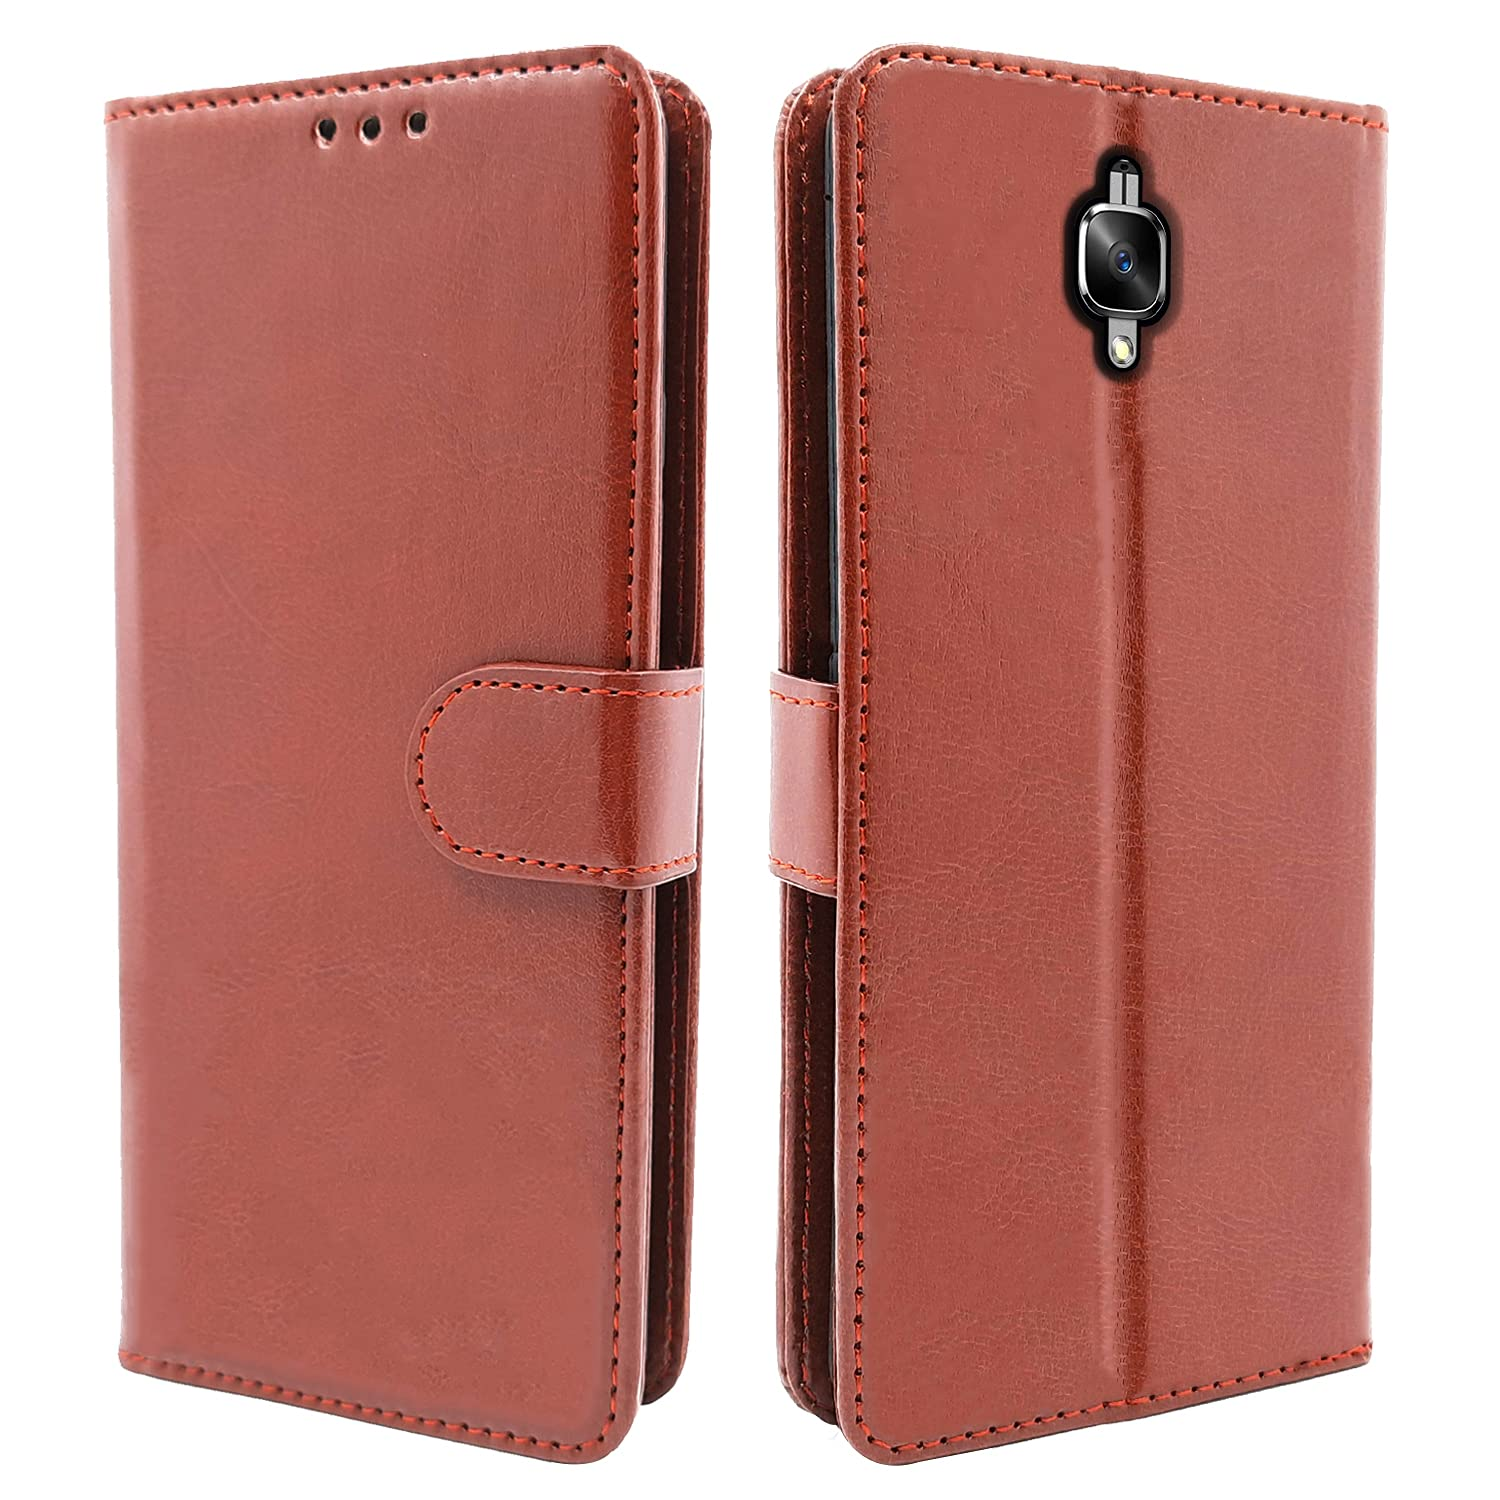 Pikkme Oneplus 3 / 3T Flip Cover Magnetic Leather Wallet Case Shockproof TPU for Oneplus 3 / 3T  Brown  Cases   Covers